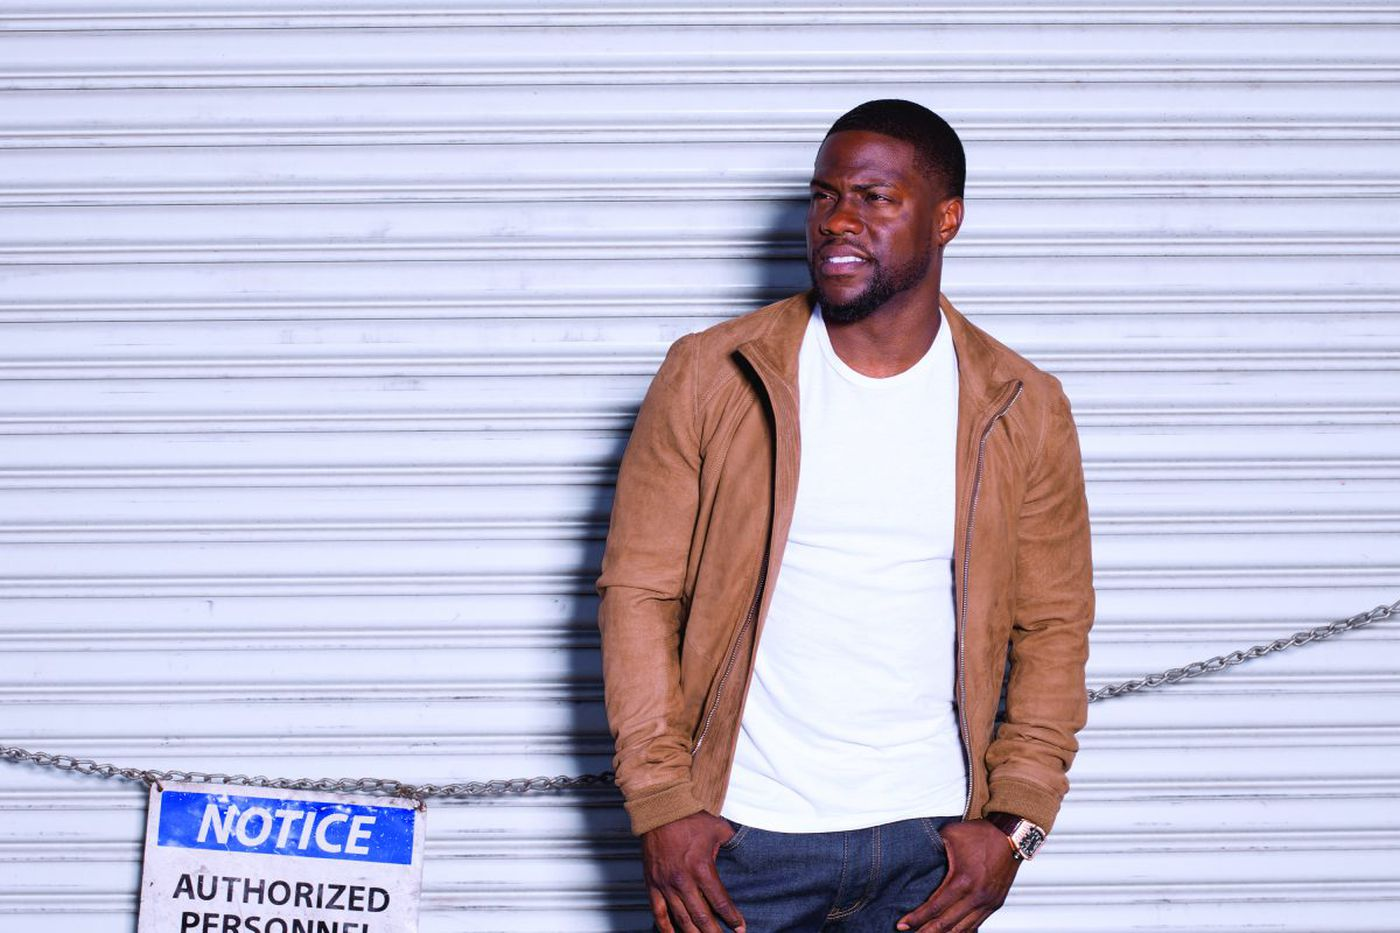 Philly celebrates Kevin Hart Day today. Here's how he became a massive celebrity